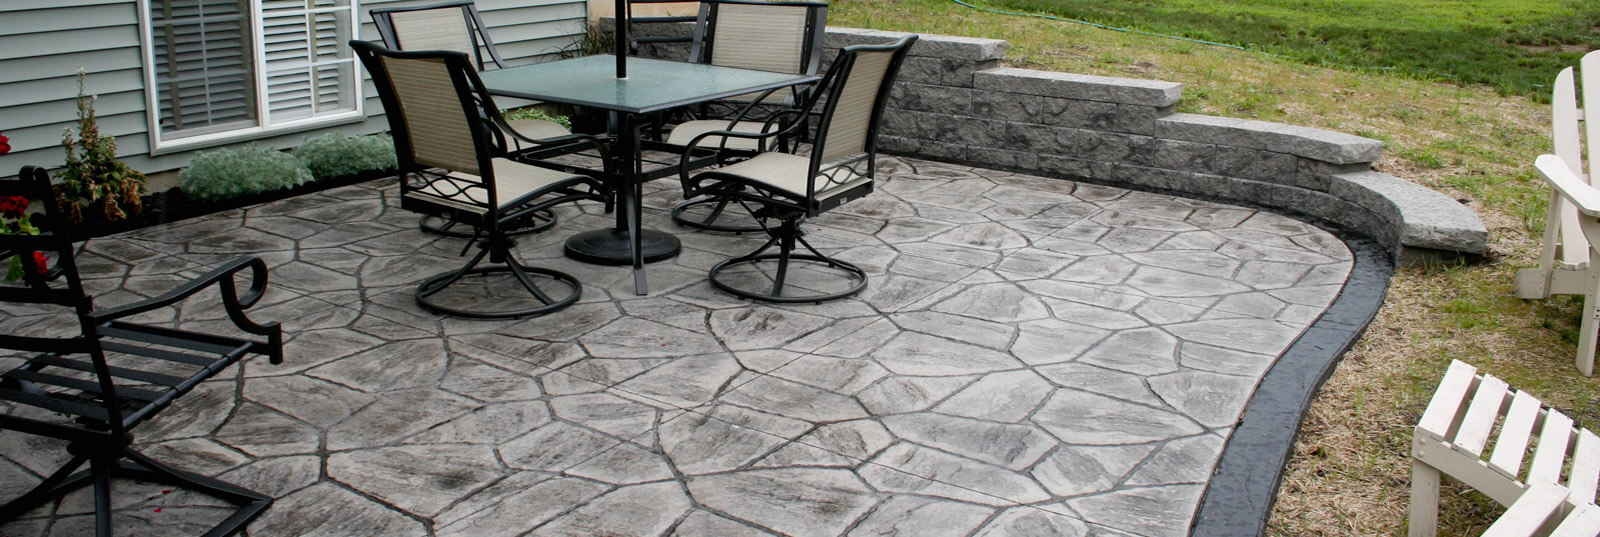 Stamped Concrete Masons Pittsford, NY